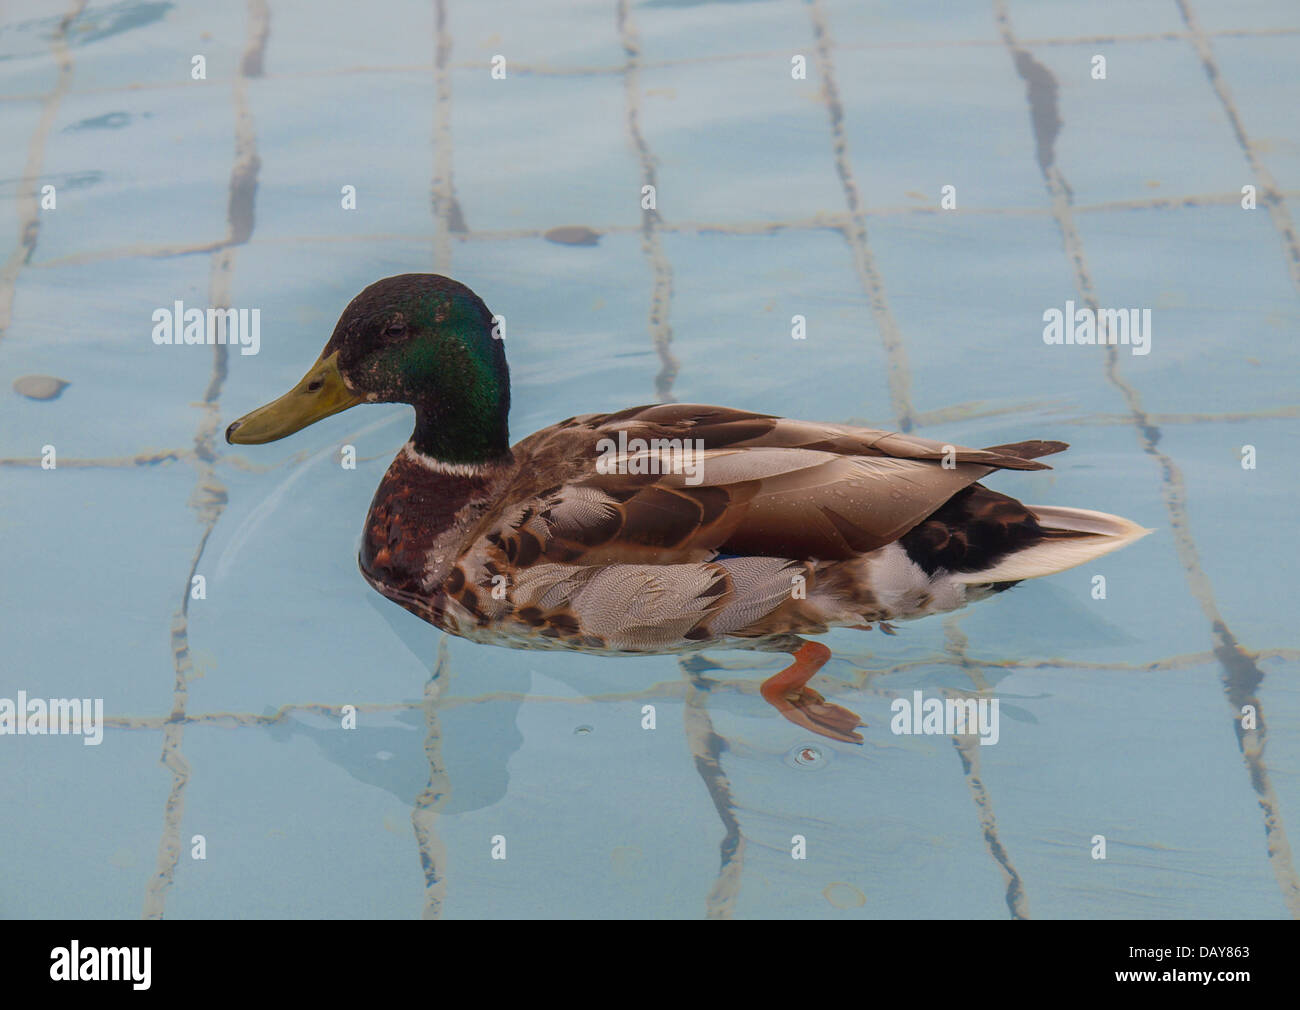 Duck bird scientific name Animalia Chordata Aves Anseriformes Anatidae - Stock Image